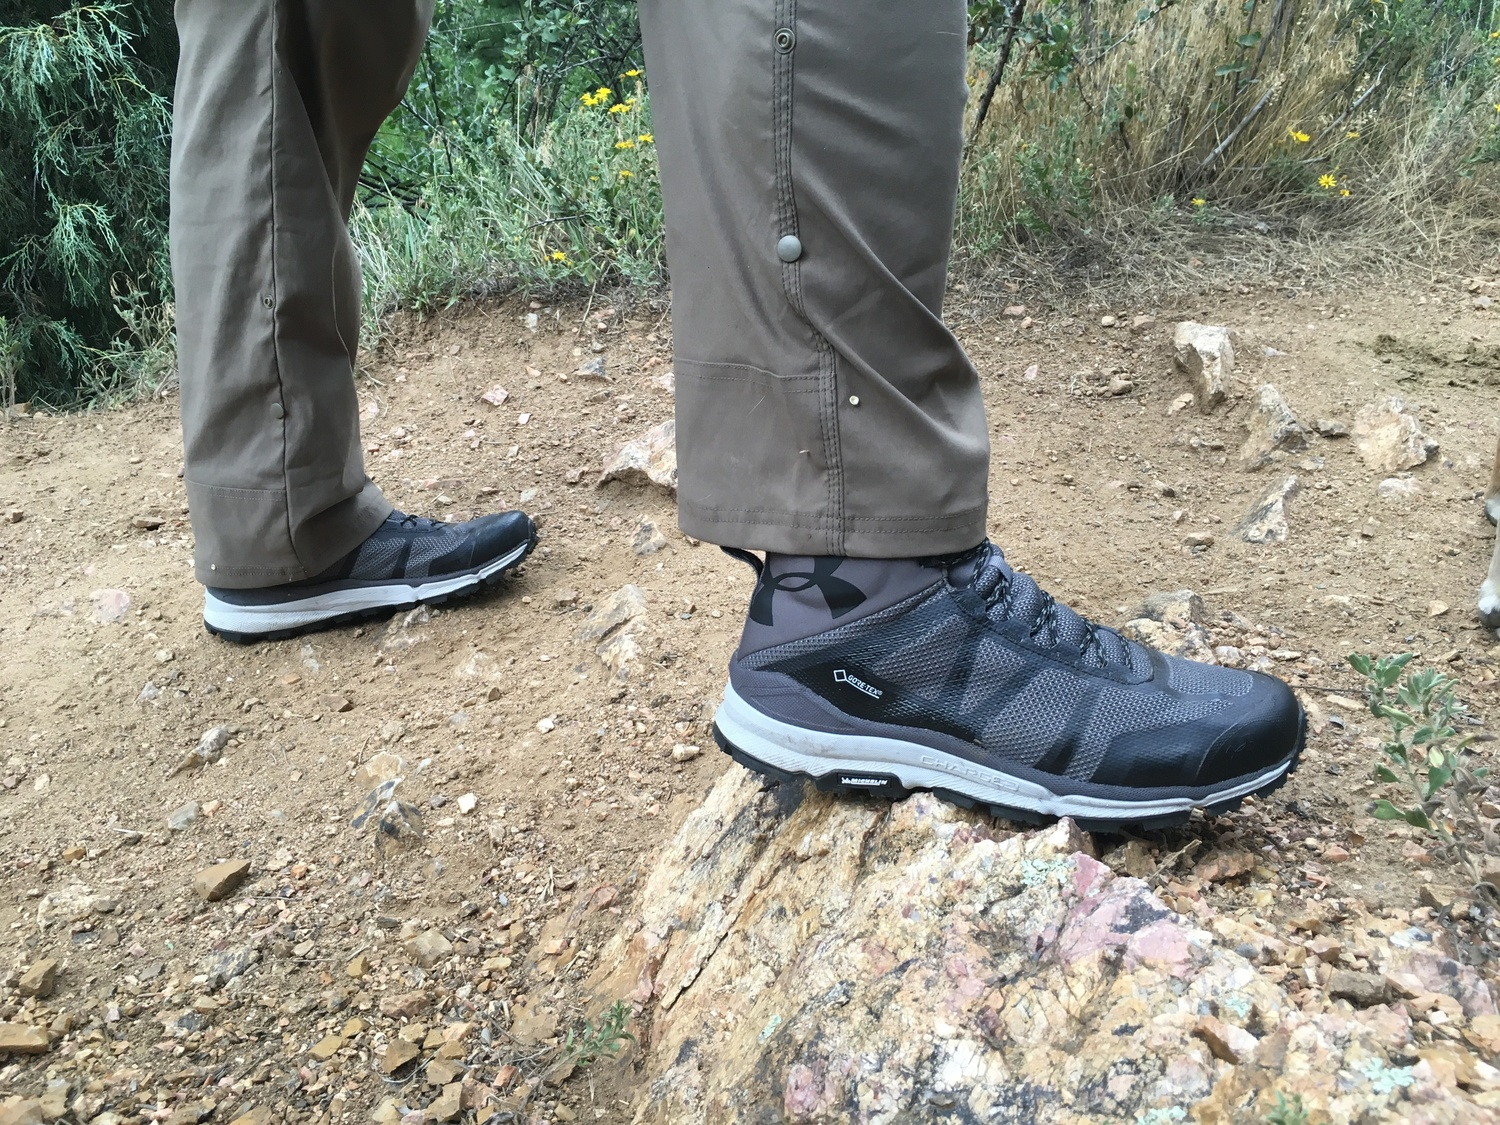 db30f74fe5b Under Armor Verge Mid GORE-TEX Boots Review — RMK Outdoors